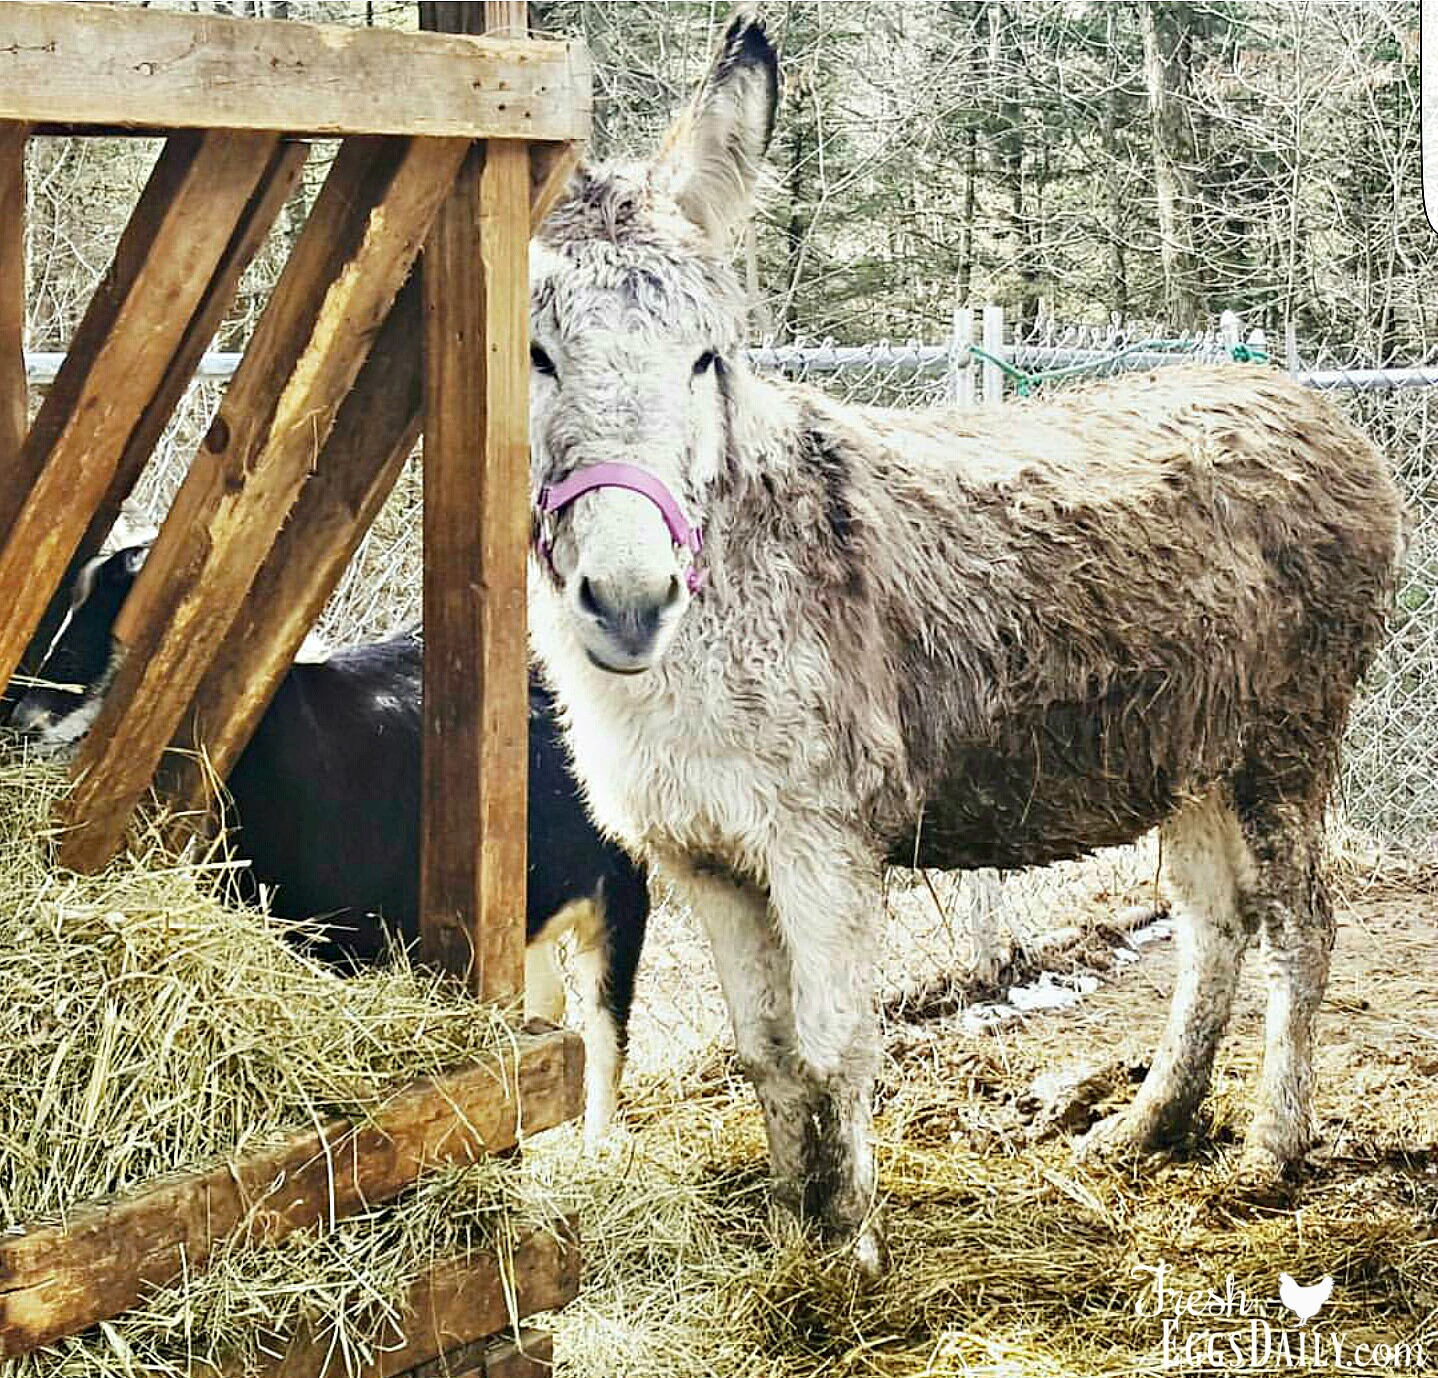 Donkeys make great guard animals for your smaller animals chickens ducks goats etc gladly taking on coyotes or neighbors dogs that might venture to